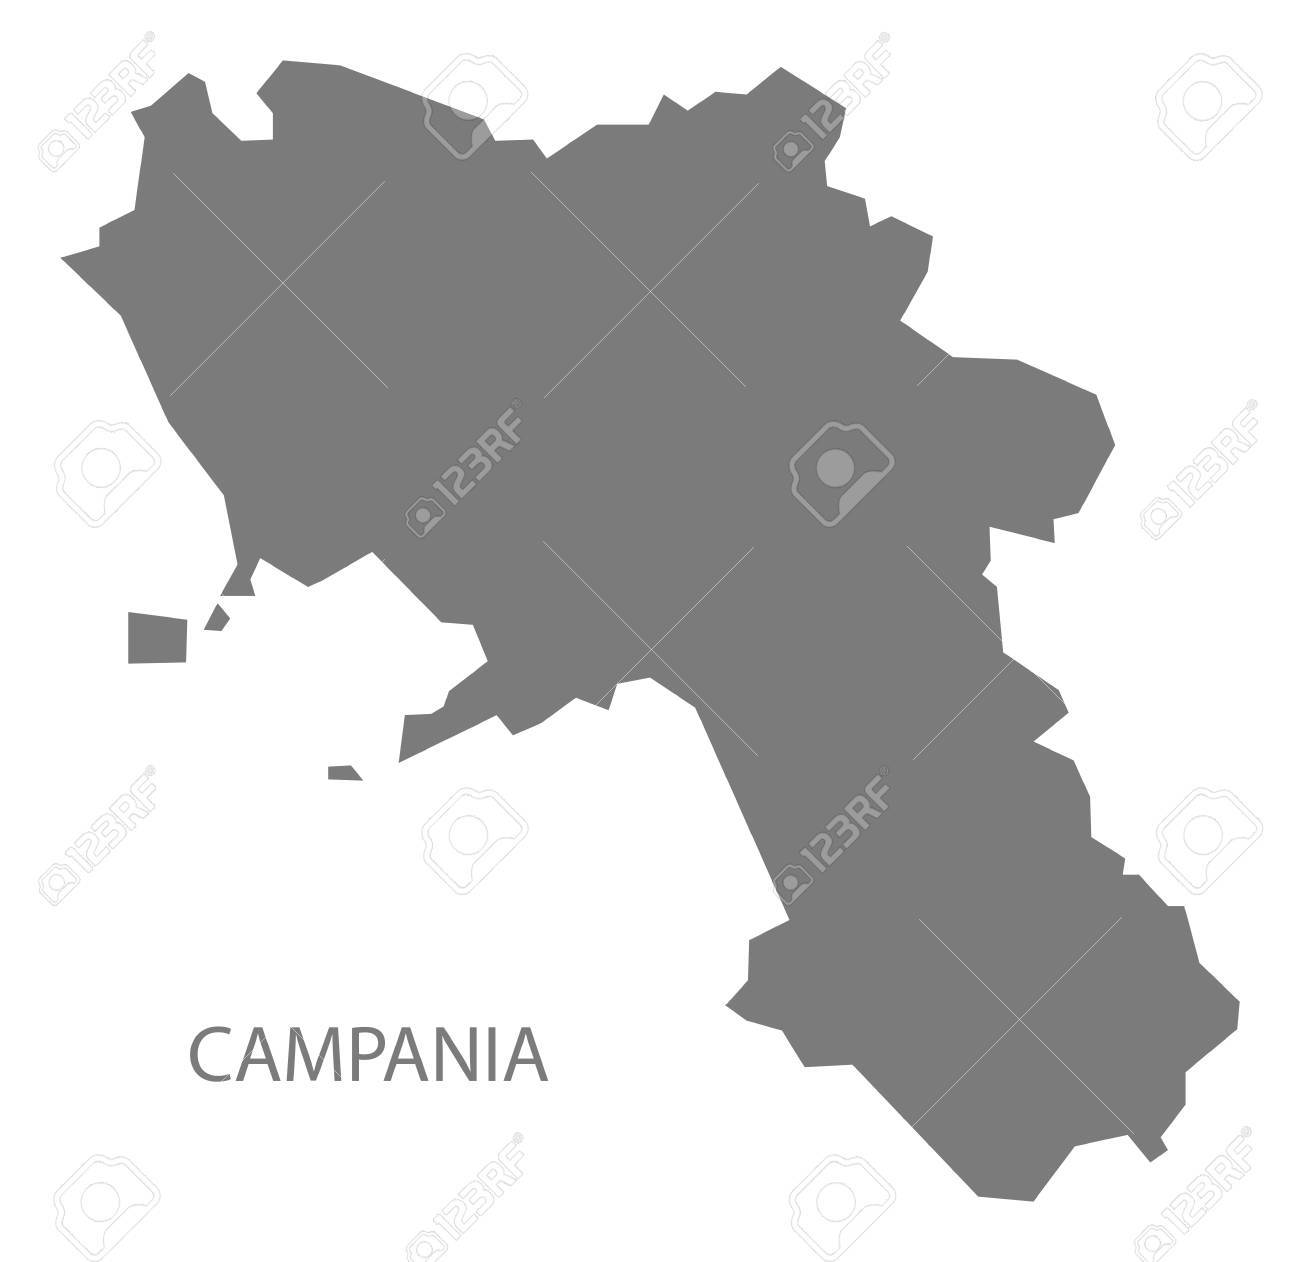 Campania Italy Map In Grey Royalty Free Cliparts, Vectors, And Stock ...